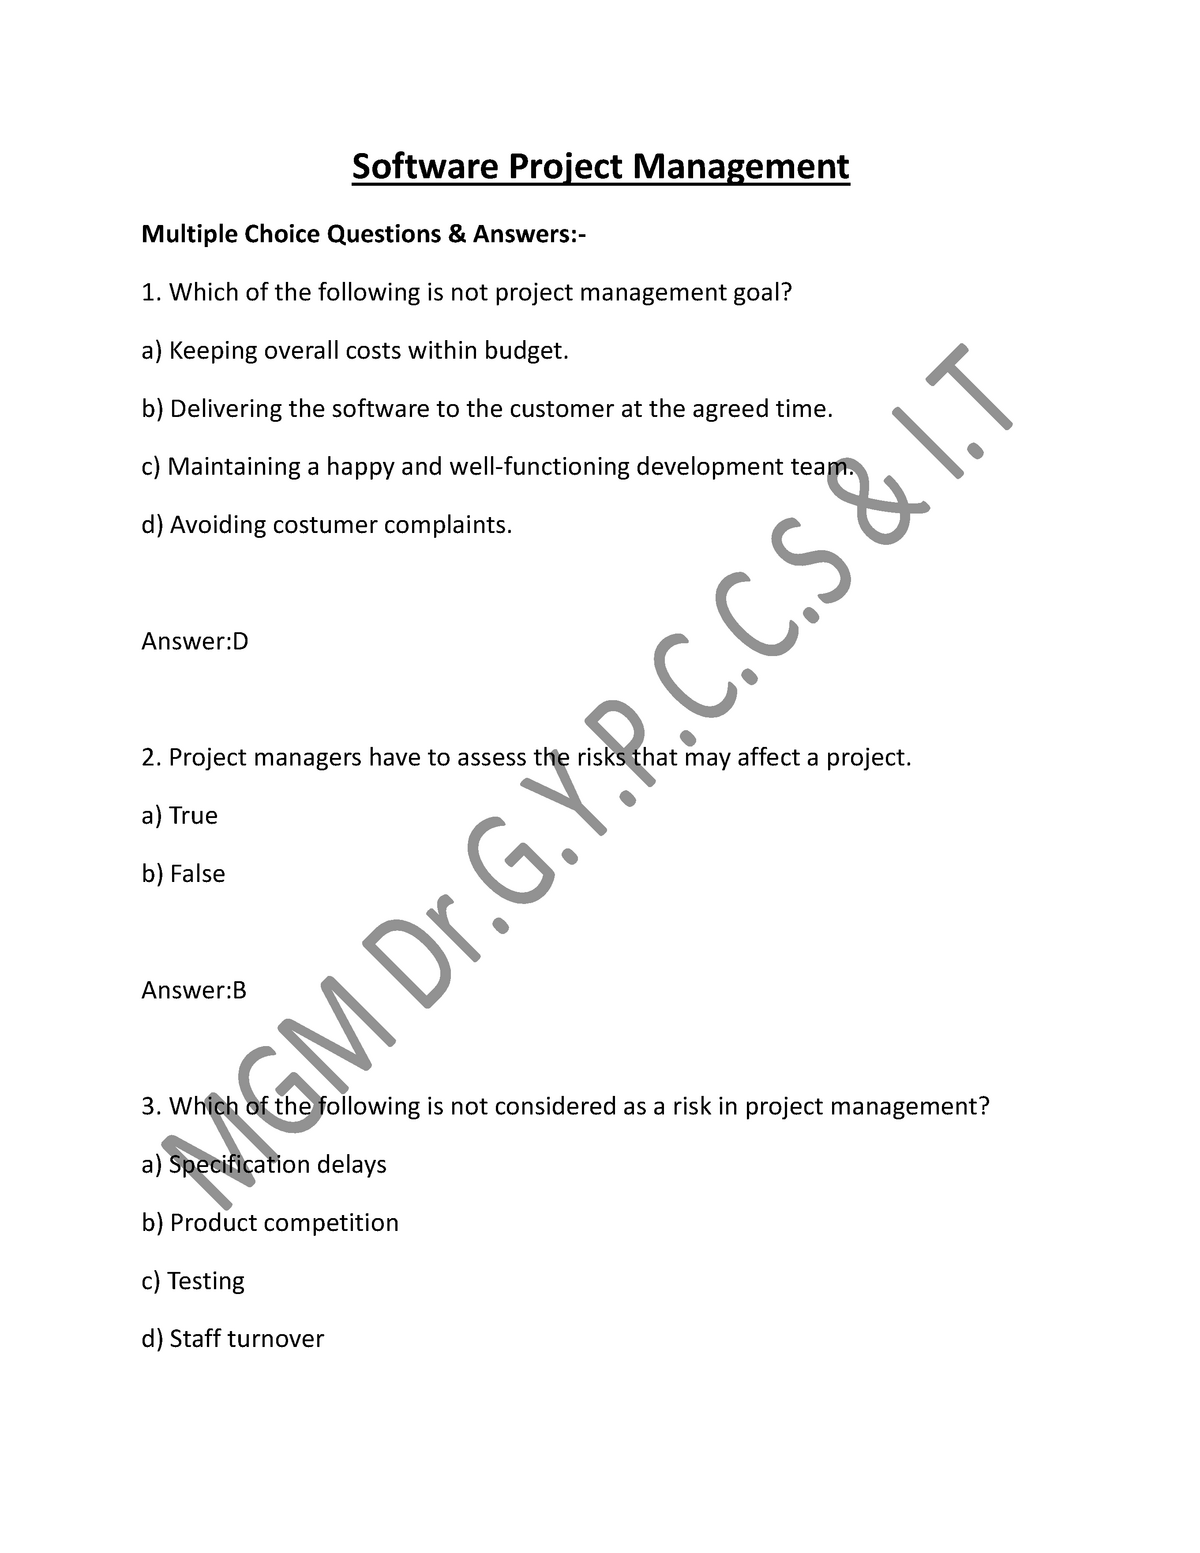 Software Project Management multiple choice - SOEN 6841